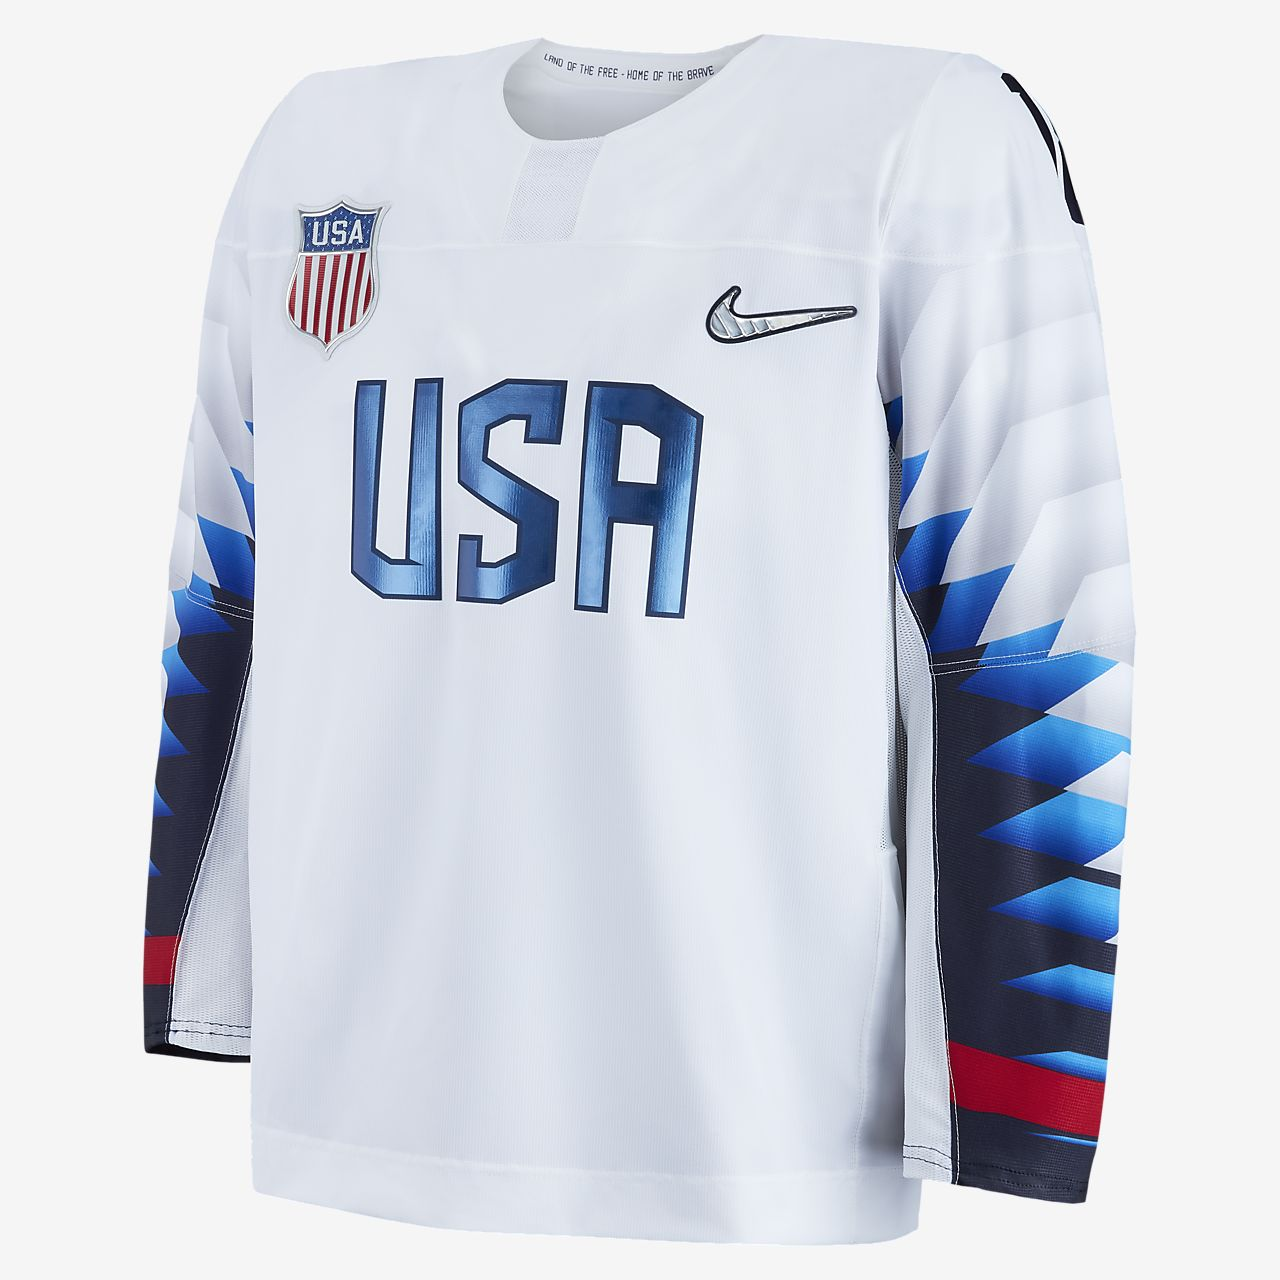 73ecf1a7522 Nike Team USA Replica Men s Hockey Jersey. Nike.com